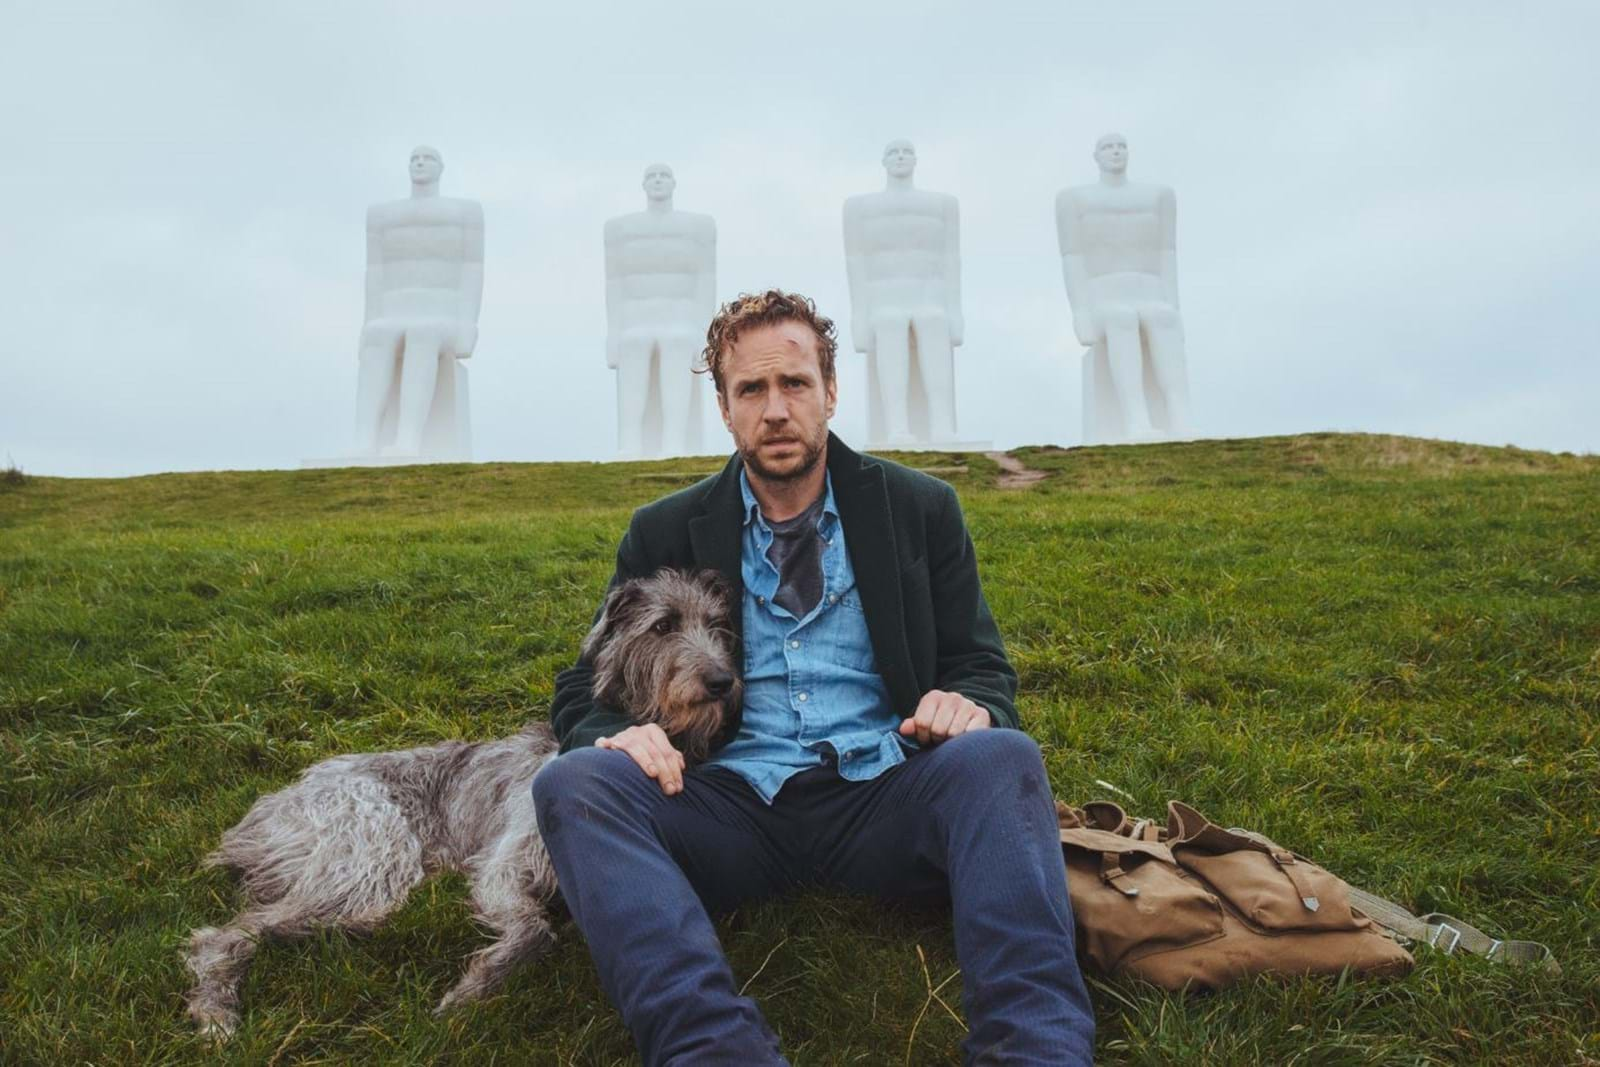 RAFE SPALL TO STAR IN COMEDY 'DENMARK'